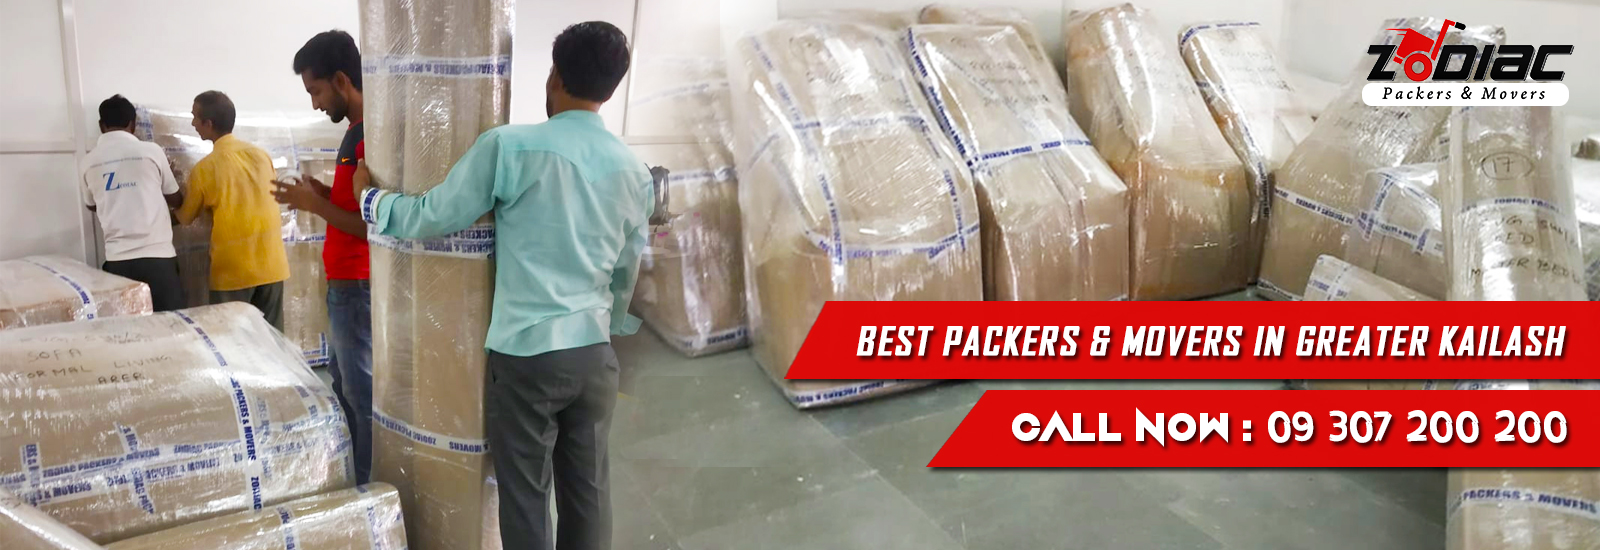 Packers and Movers in Greater Kailash